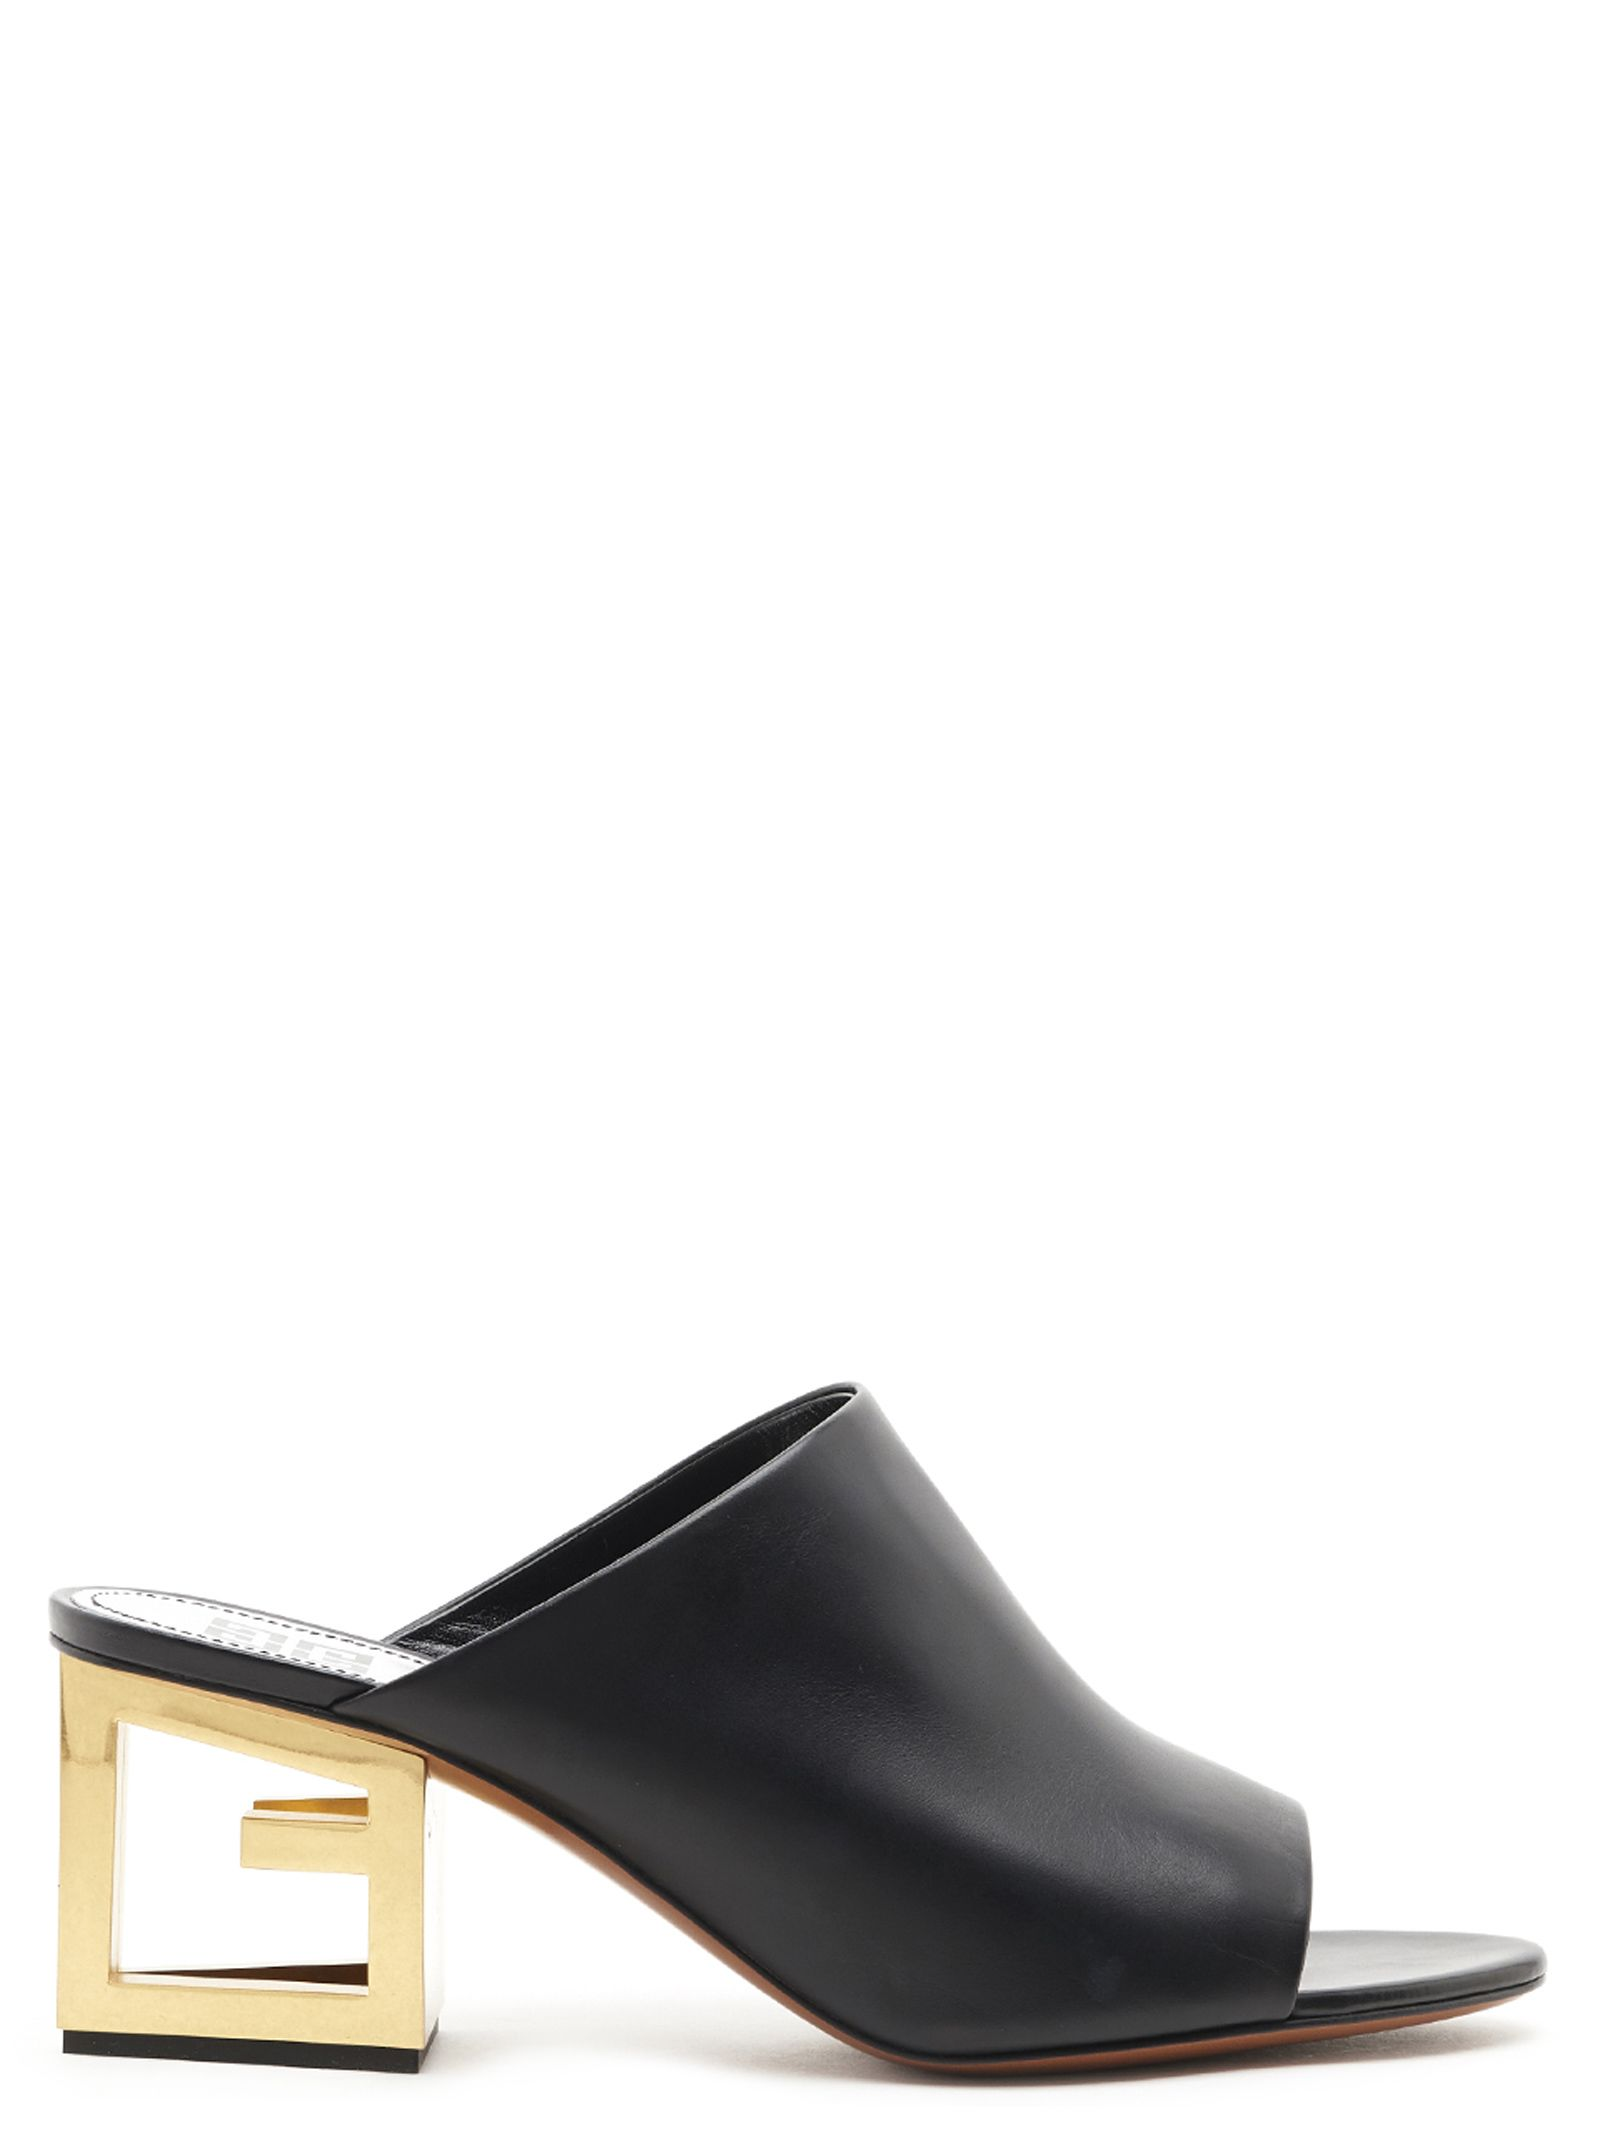 cd4dcc99ca6 Givenchy Givenchy  triangle  Shoes - Black - 10796865